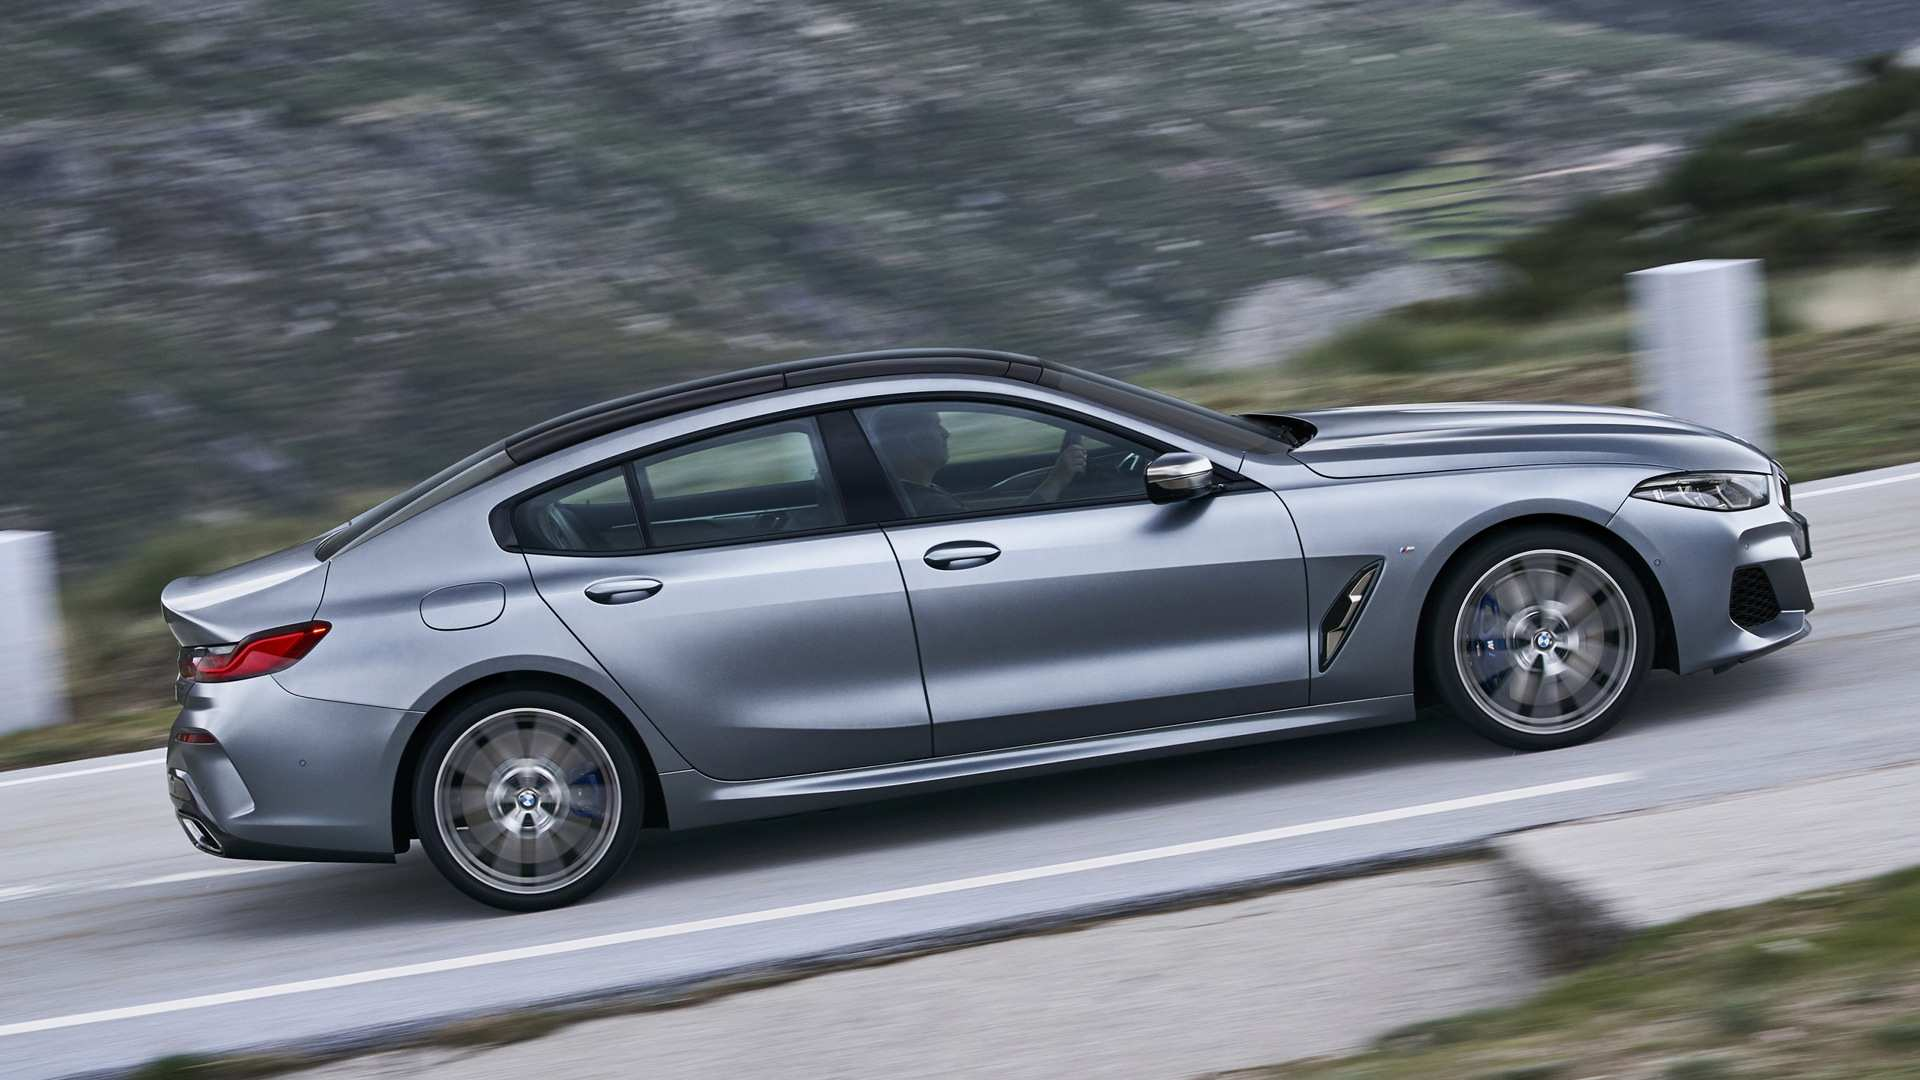 37 Gallery of Bmw Gran Coupe 2020 New Review by Bmw Gran Coupe 2020